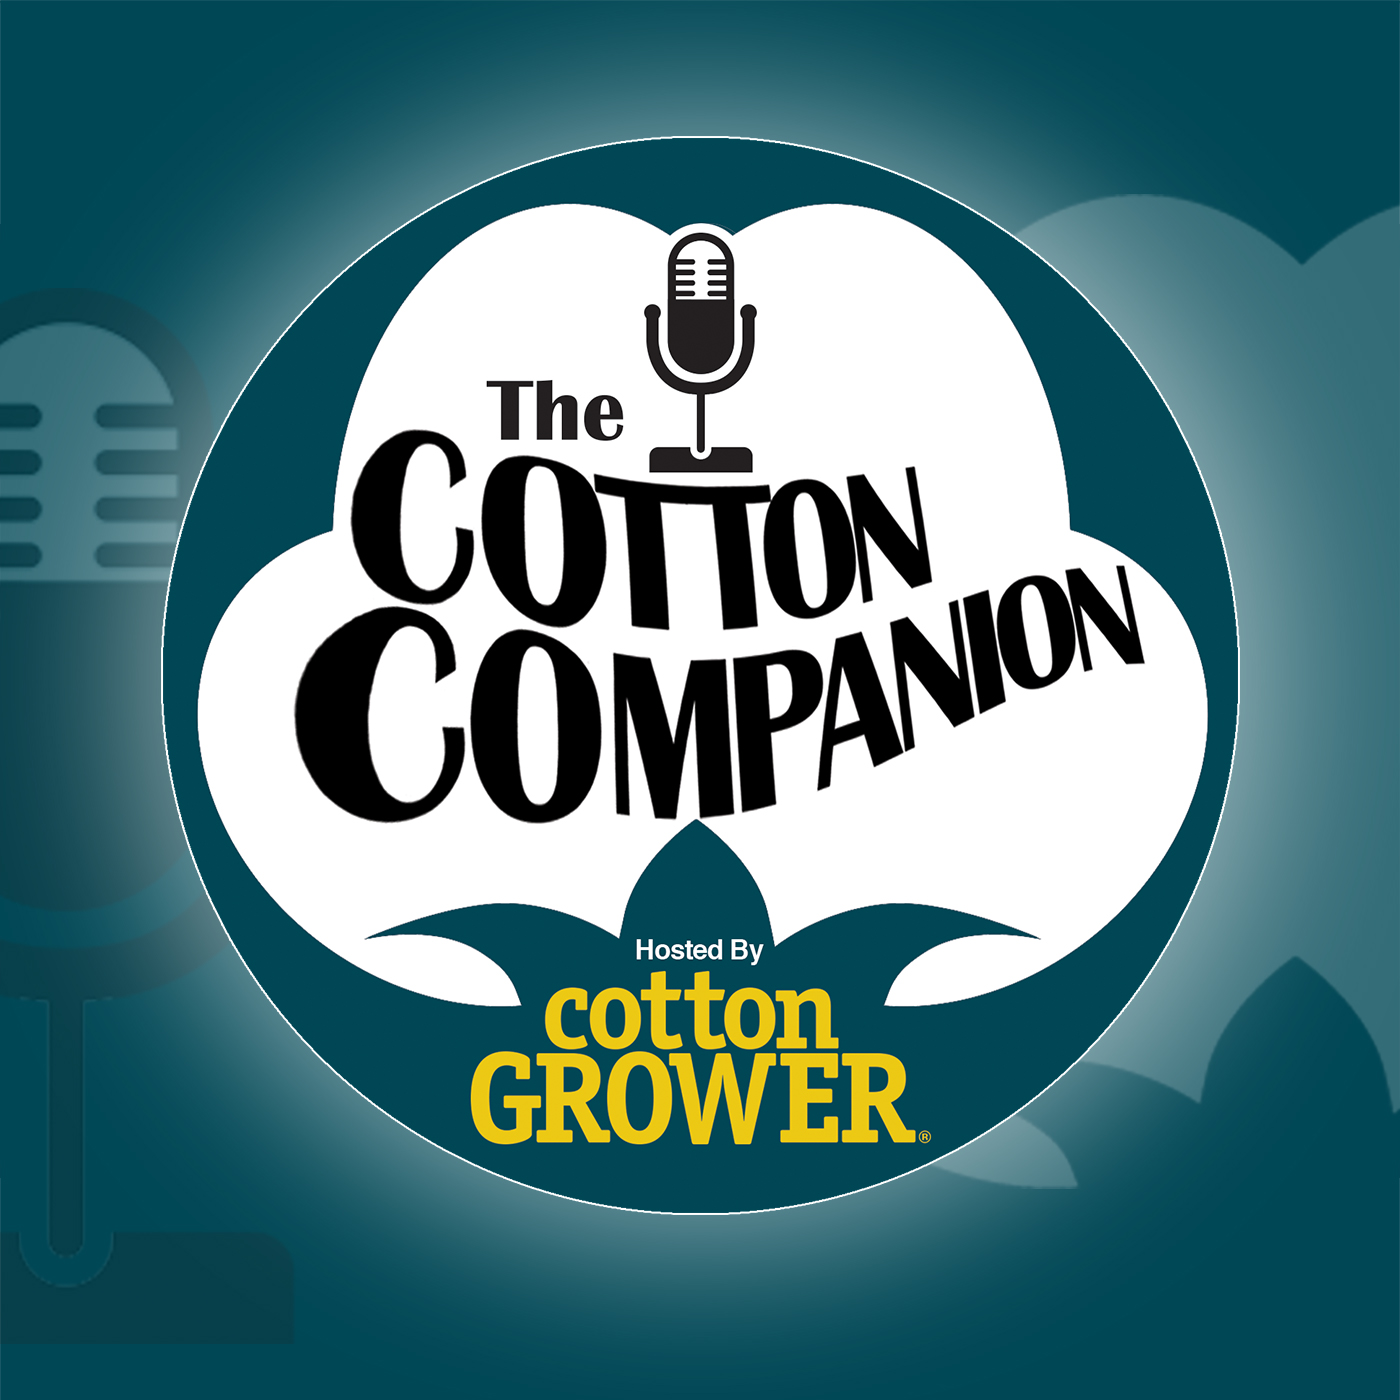 Cotton Companion